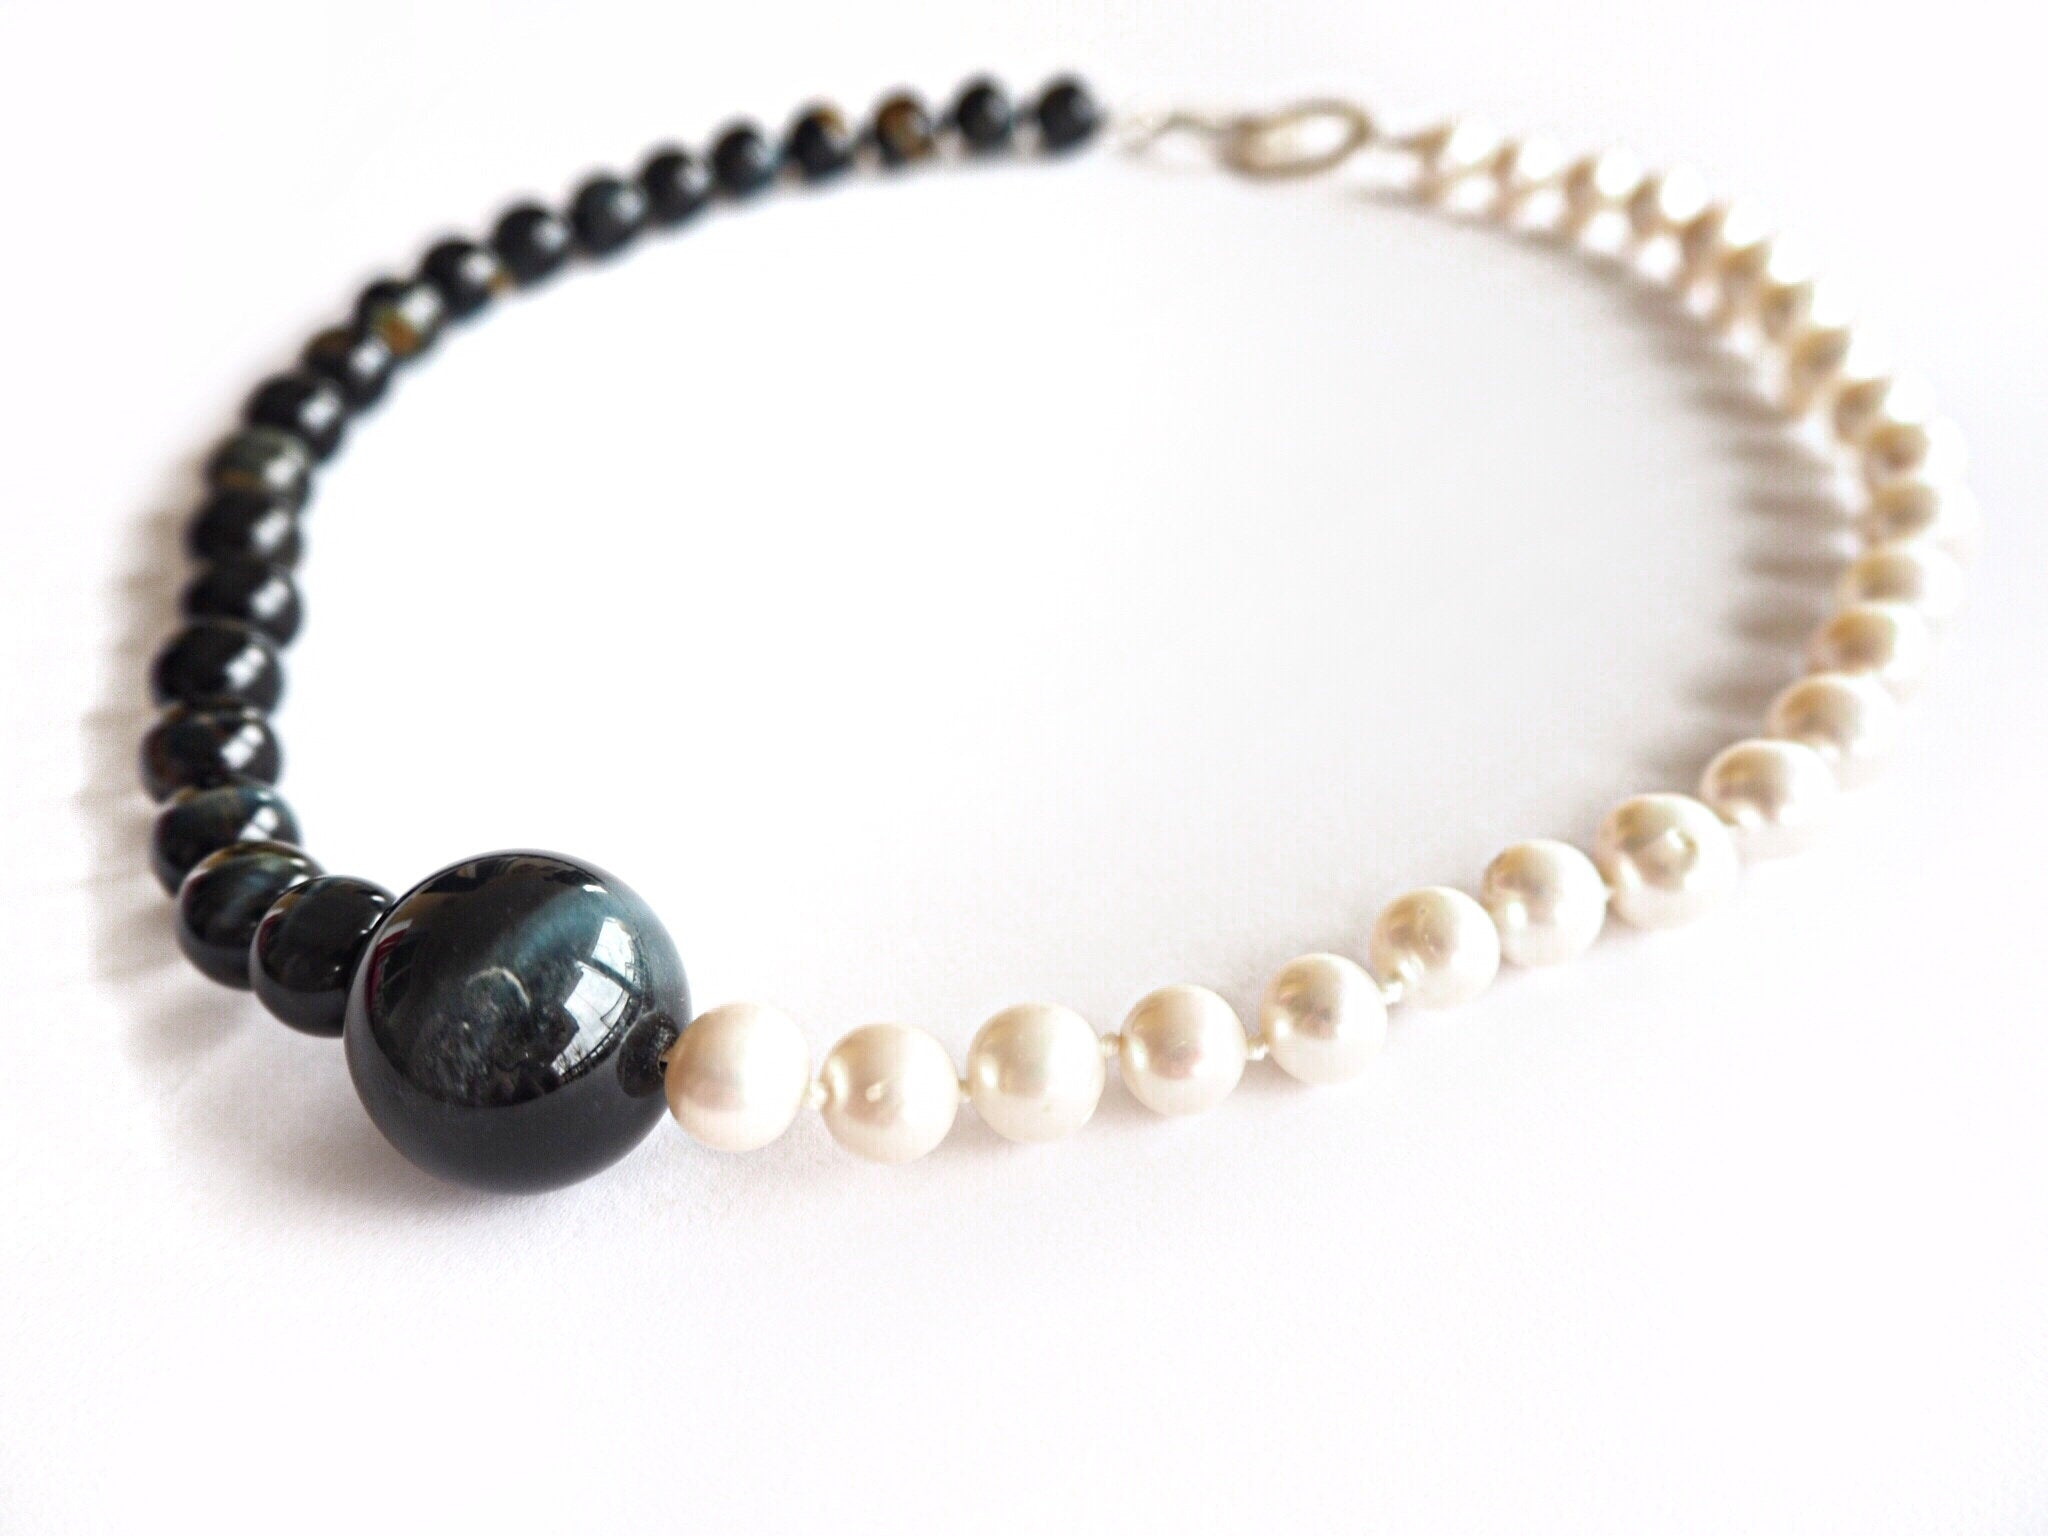 Pearl - Pearls and hawk's eye quartz necklace